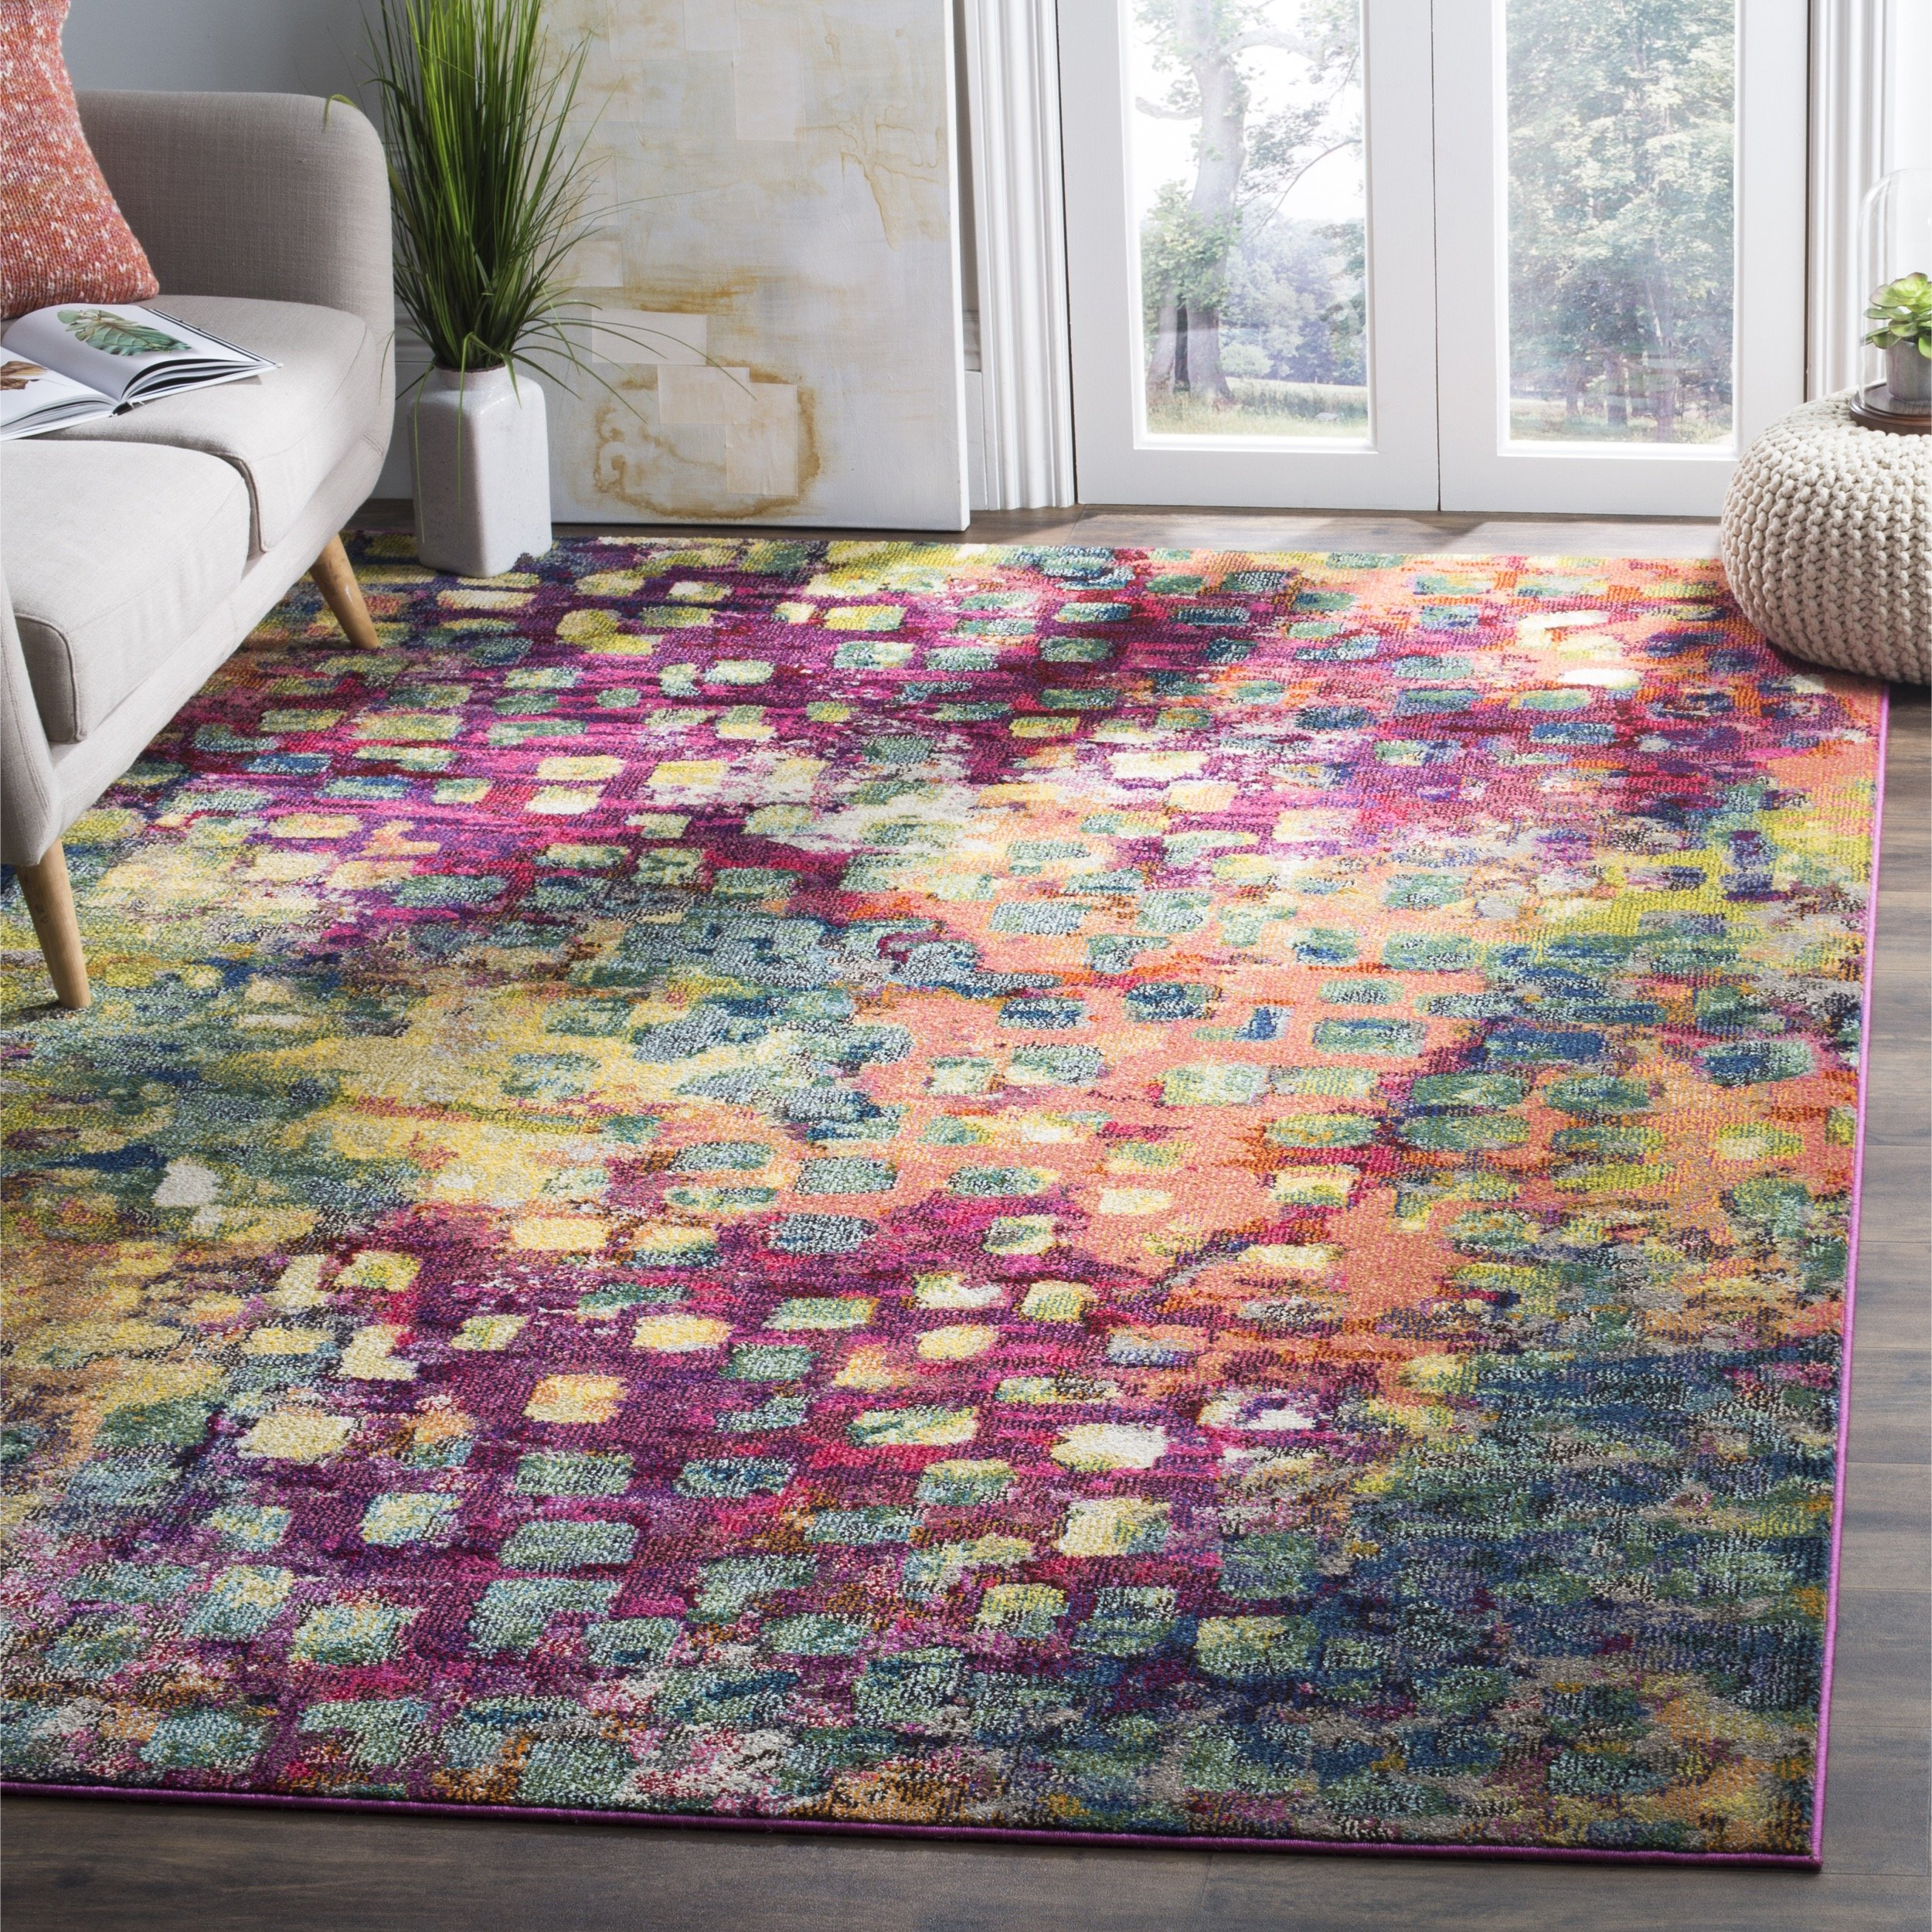 Safavieh Monaco Collection MNC225D Modern Abstract Watercolor Pink and Multi Area Rug (8' x 11') by Safavieh